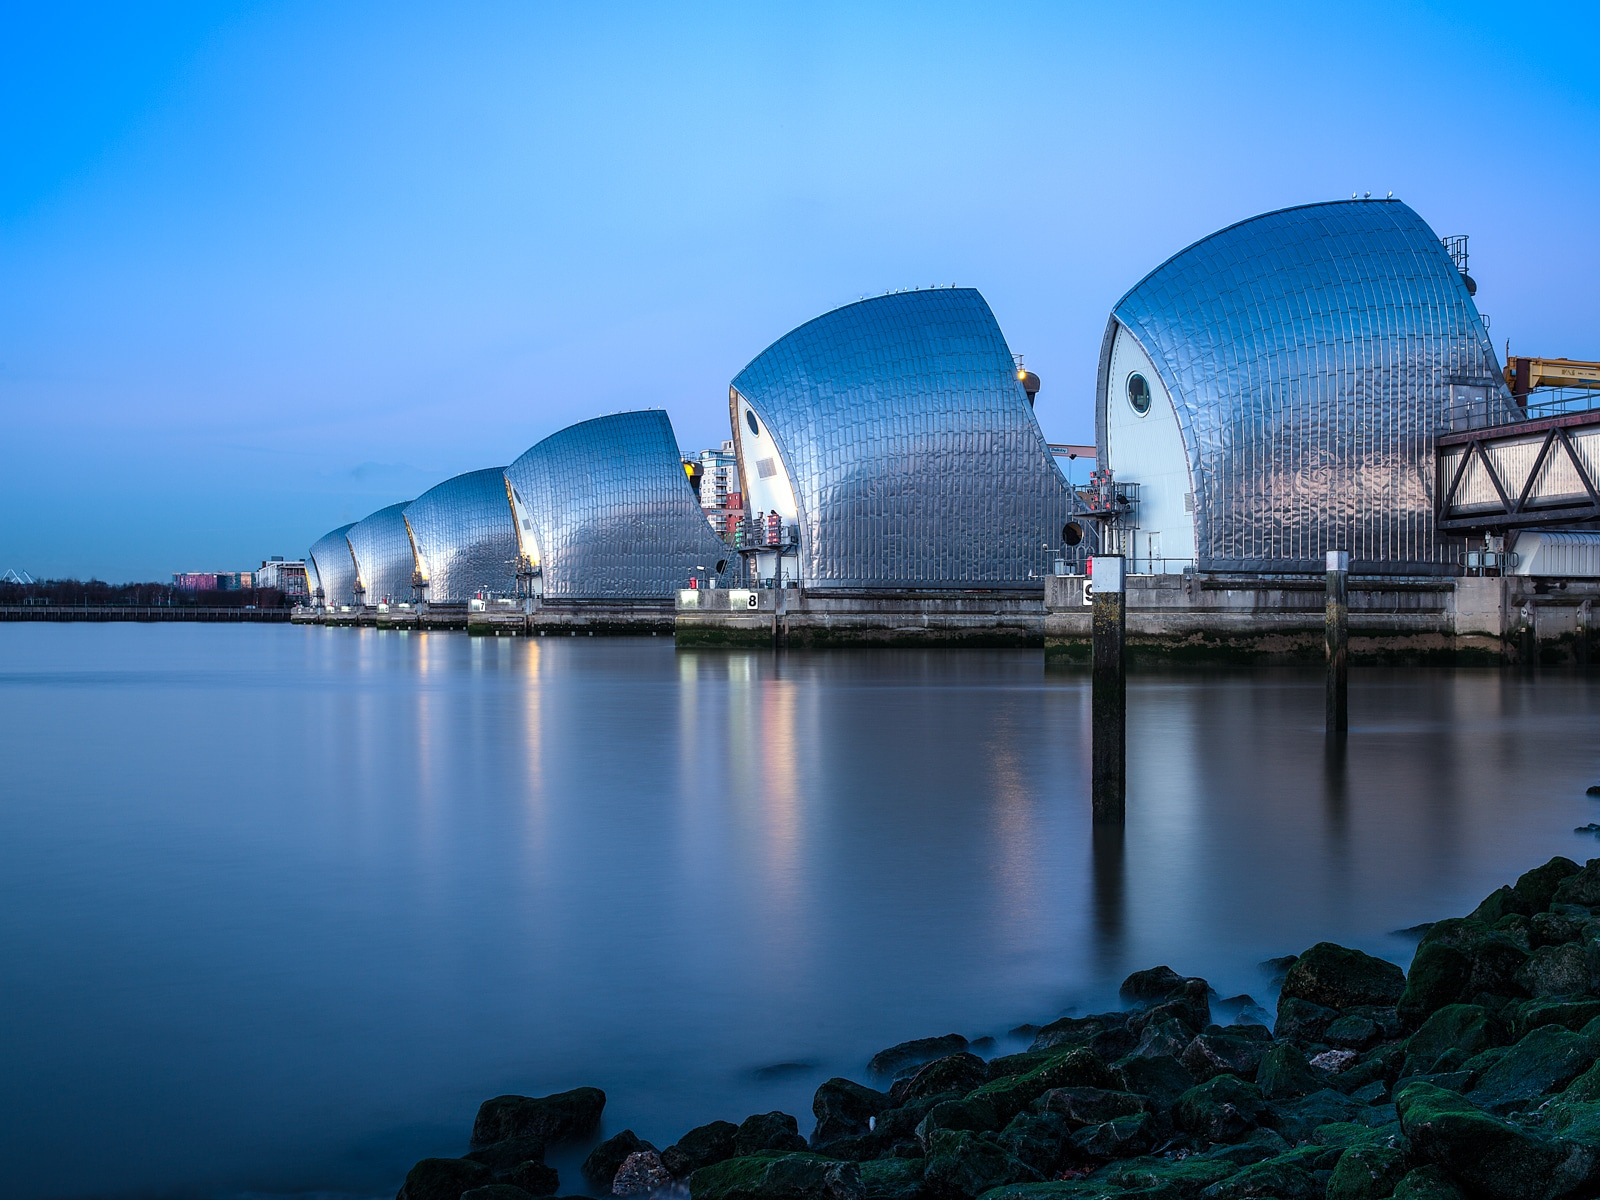 Thames Barrier - Blue and Still